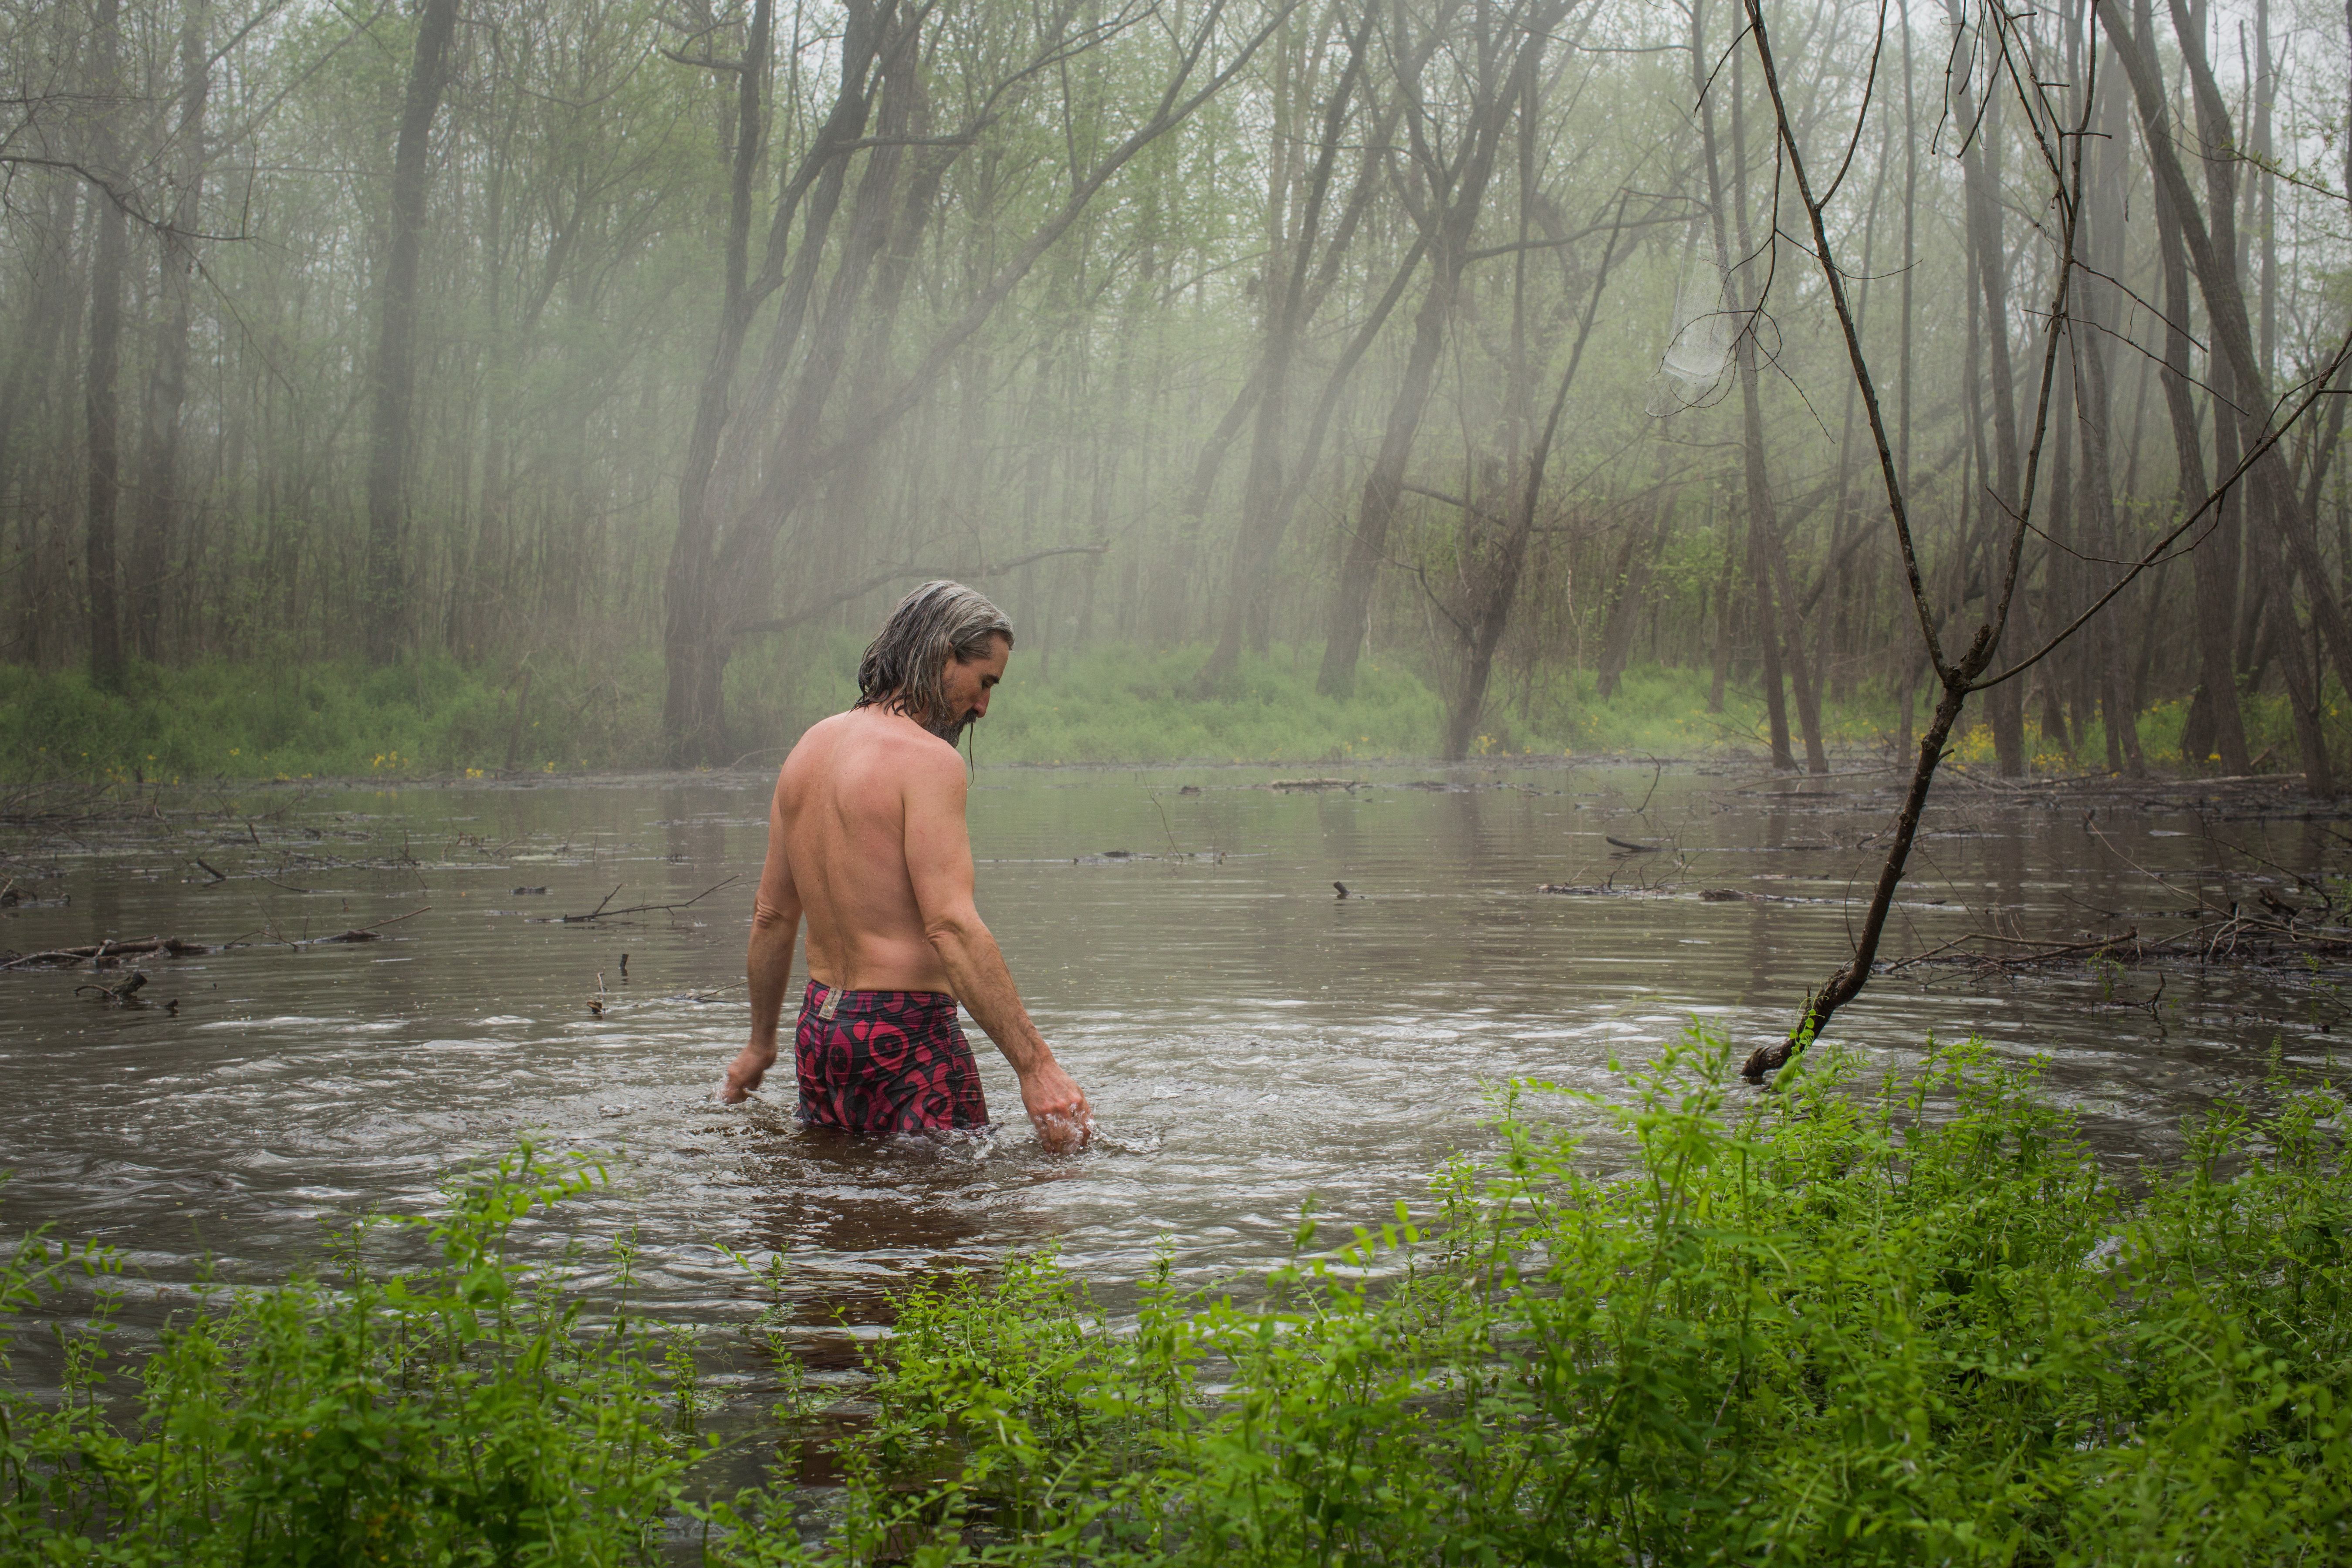 Contemplating the wetlands. From the Atchafalaya Rivergator Expedition of 2015. Image courtesy of David Hanson.